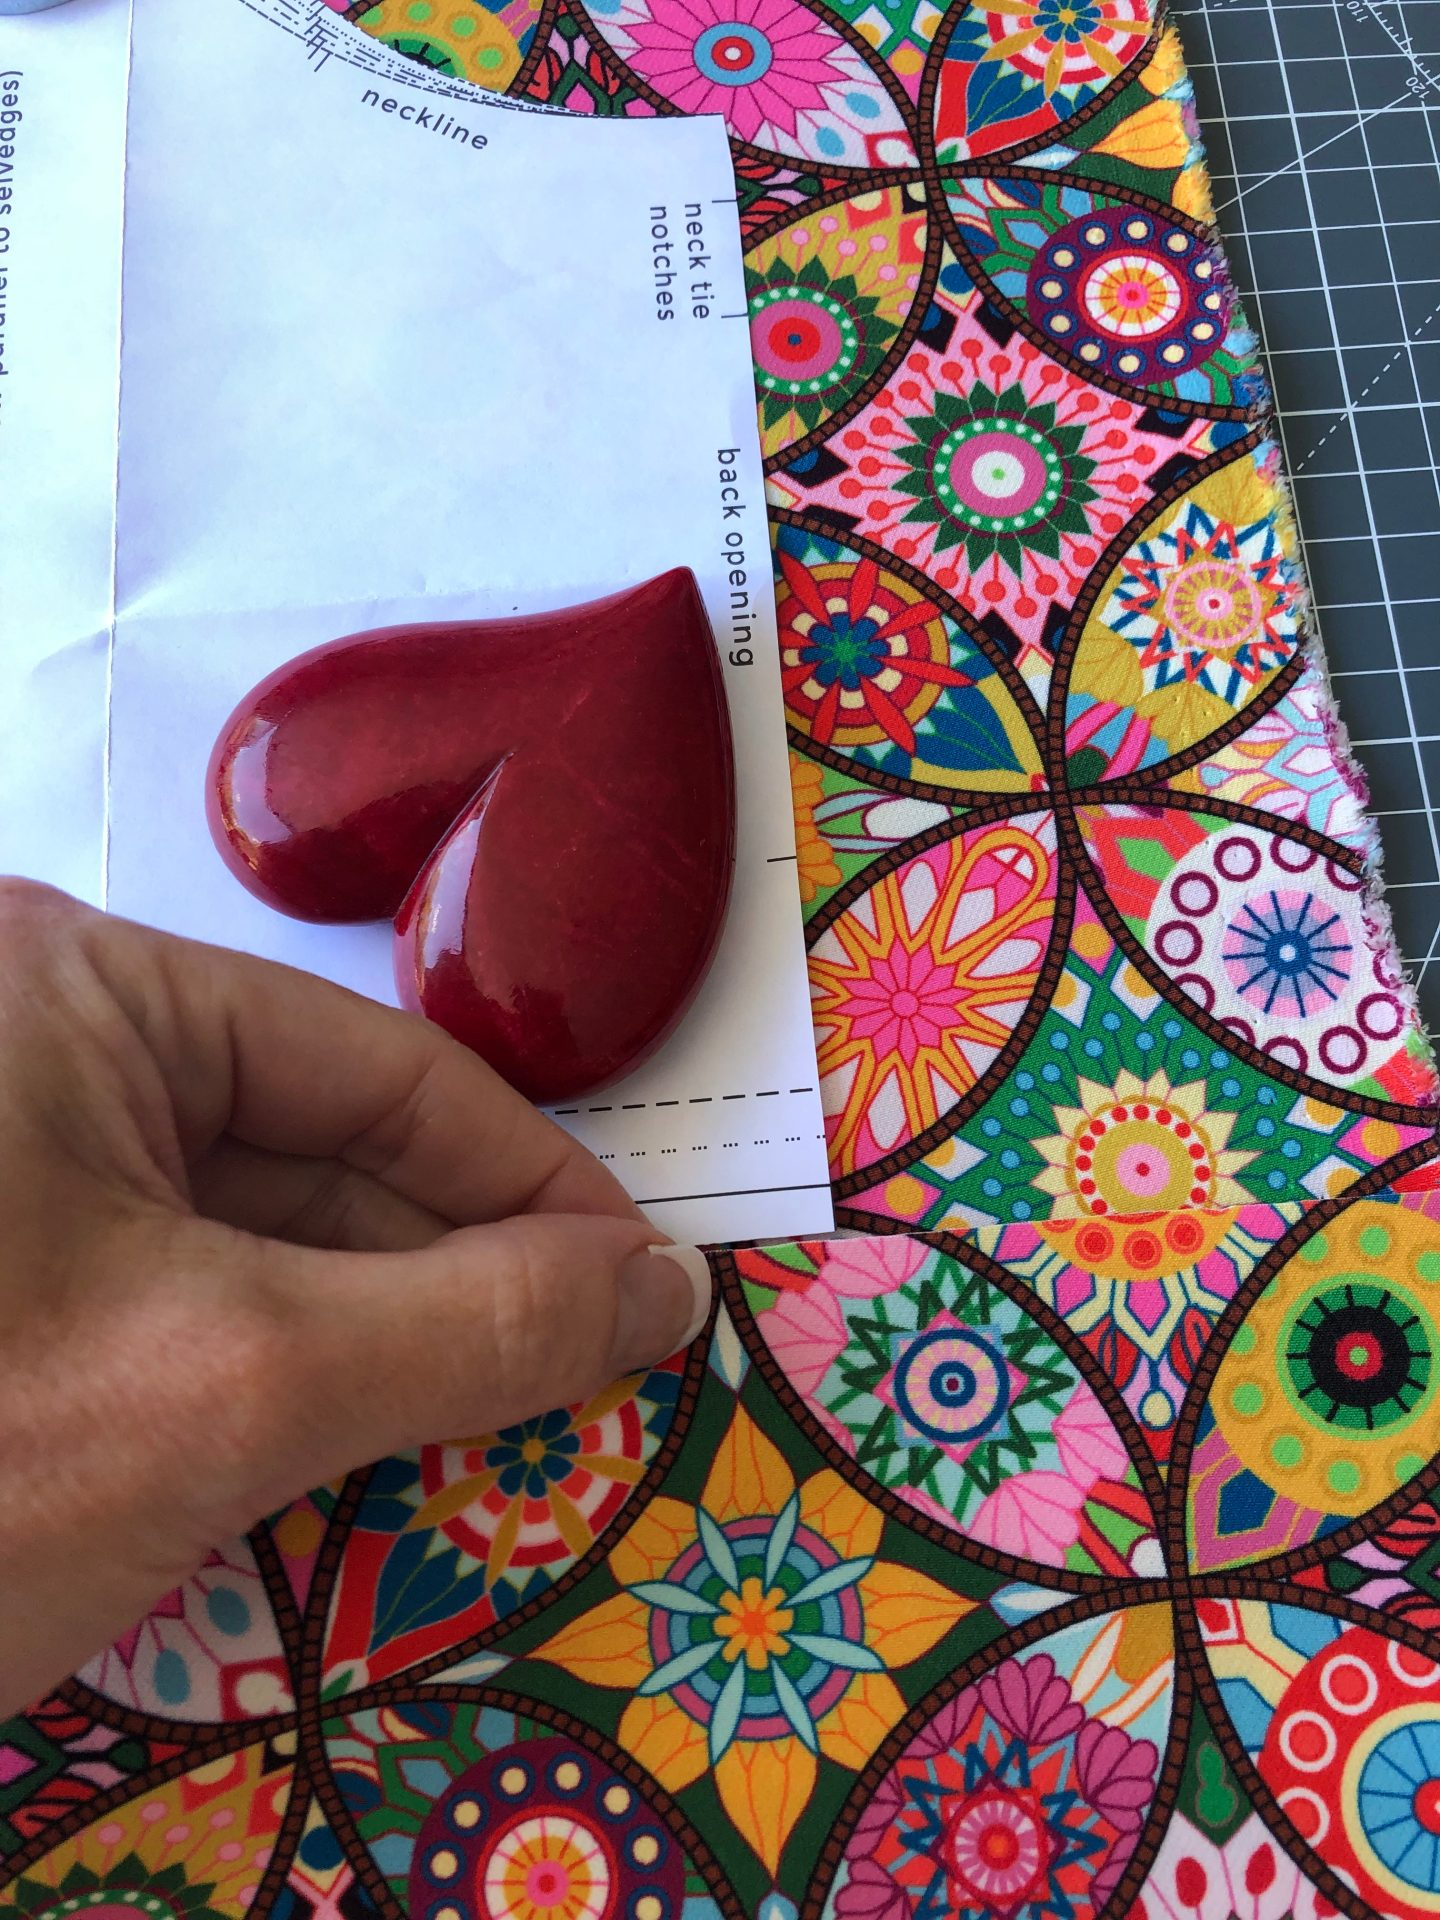 Make sure both sides of your pattern match. Cut one side and lay it next to the side you are cutting and line it up.